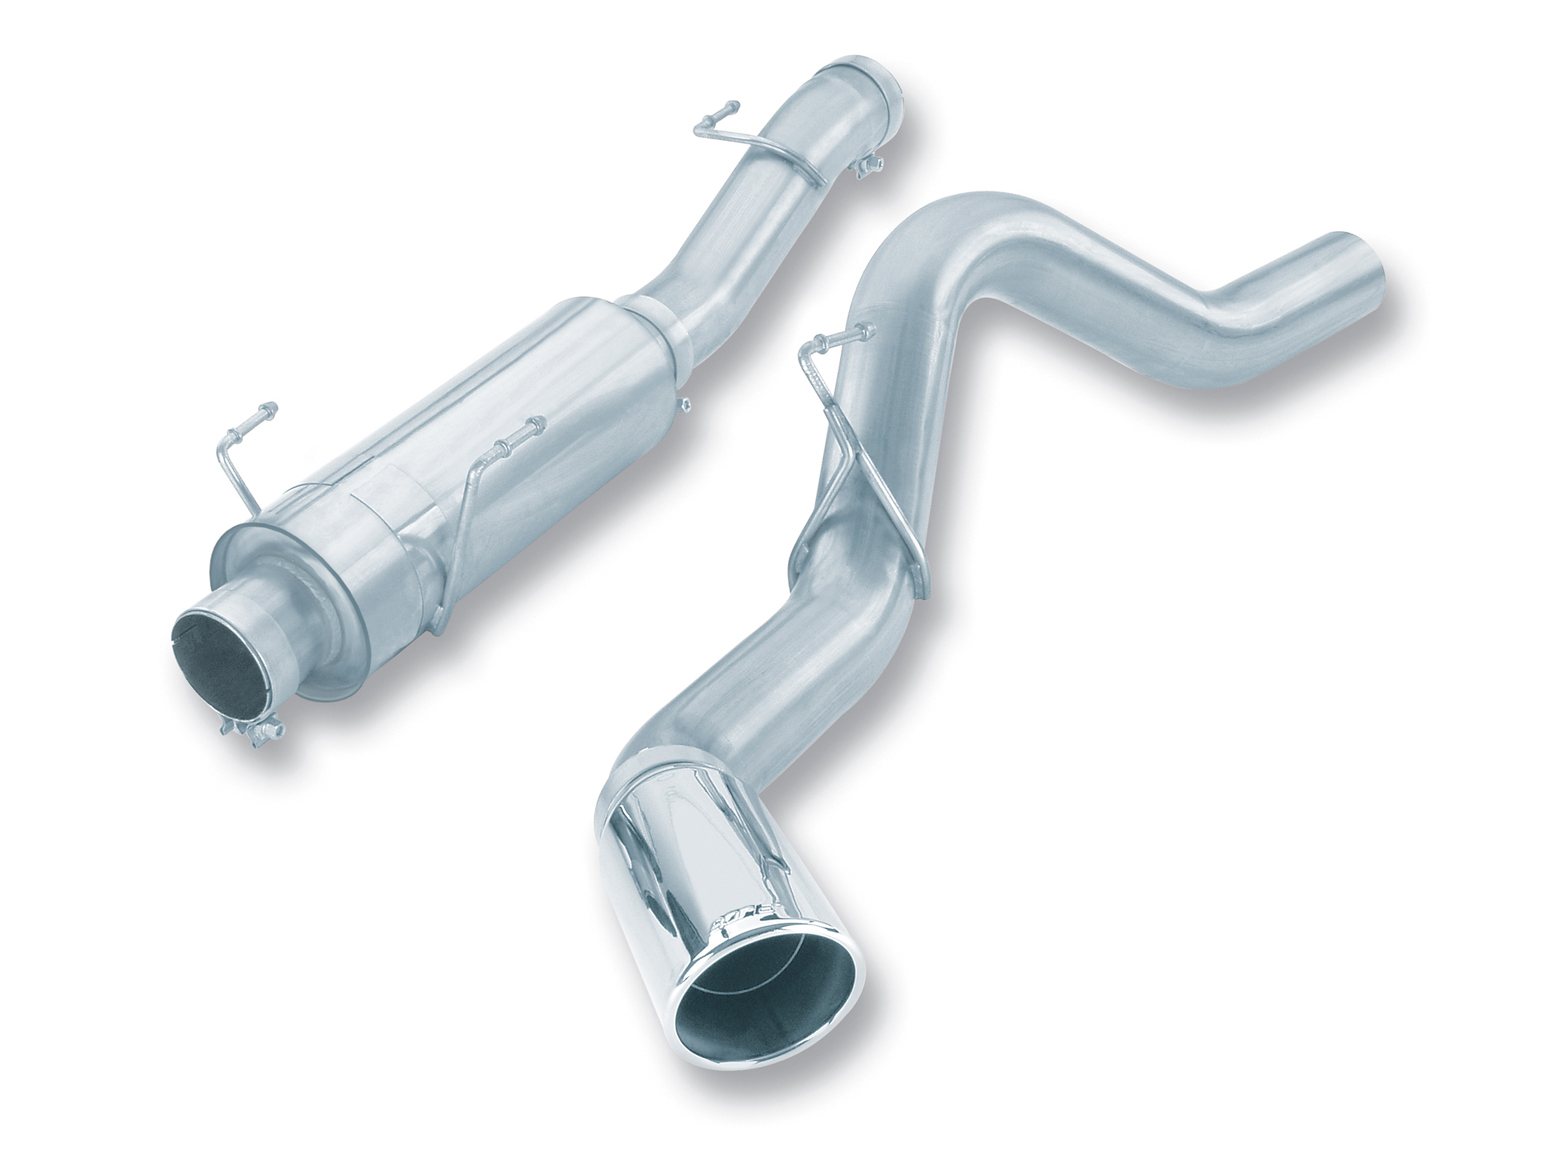 "Dodge Ram 2500/3500 5.9l 6cyl Diesel 2004-2007 Borla 4"" Cat-Back Exhaust System - Single Round Rolled Angle-Cut Single Square Angle-Cut Phantom Tips"" Long X Single Round Rolled Angle-Cut Phantom Tips"" Dia"